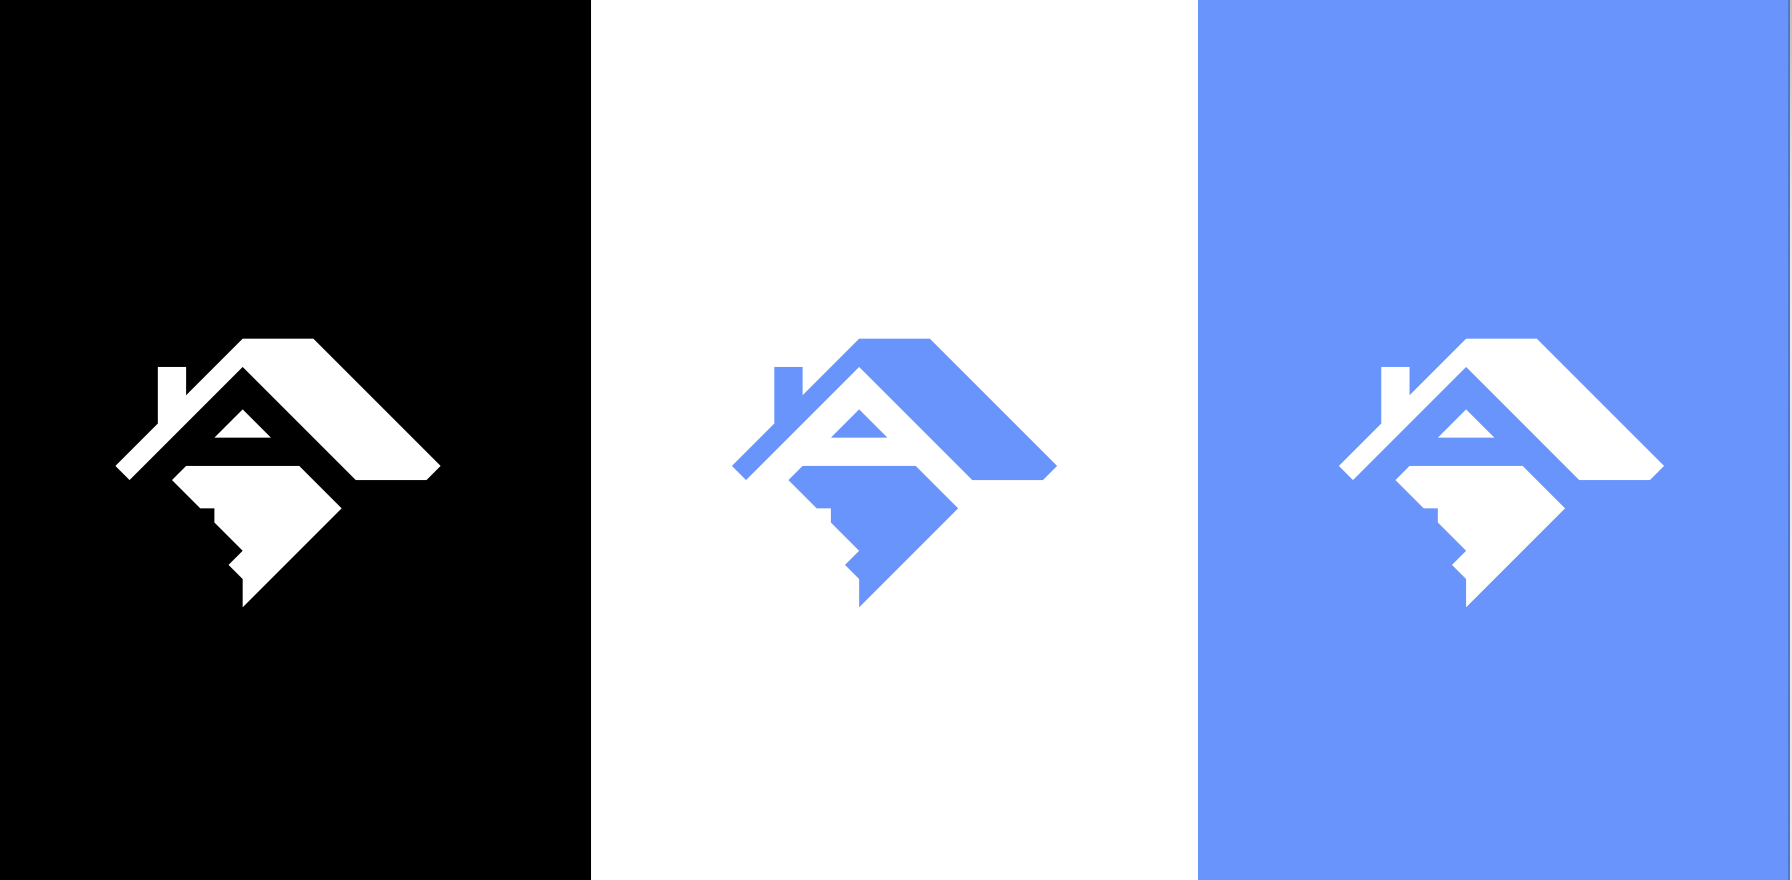 Austin Auger's logo in black, white, and blue. It's a hidden image of a rooftop and the DC borders